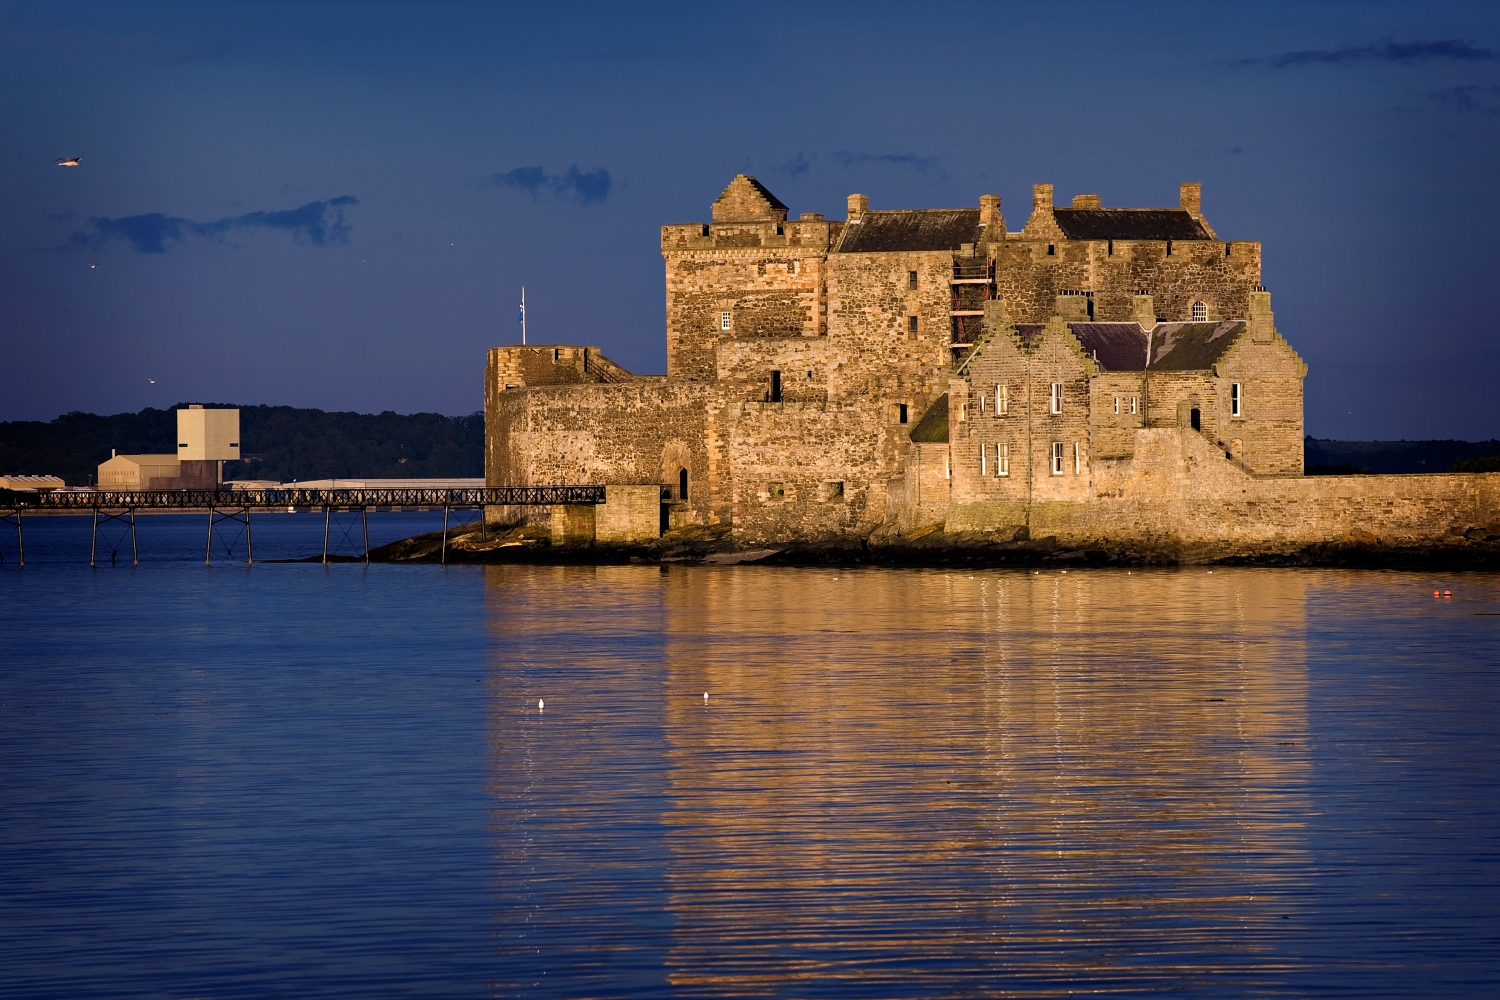 S6 Blackness Castle at night